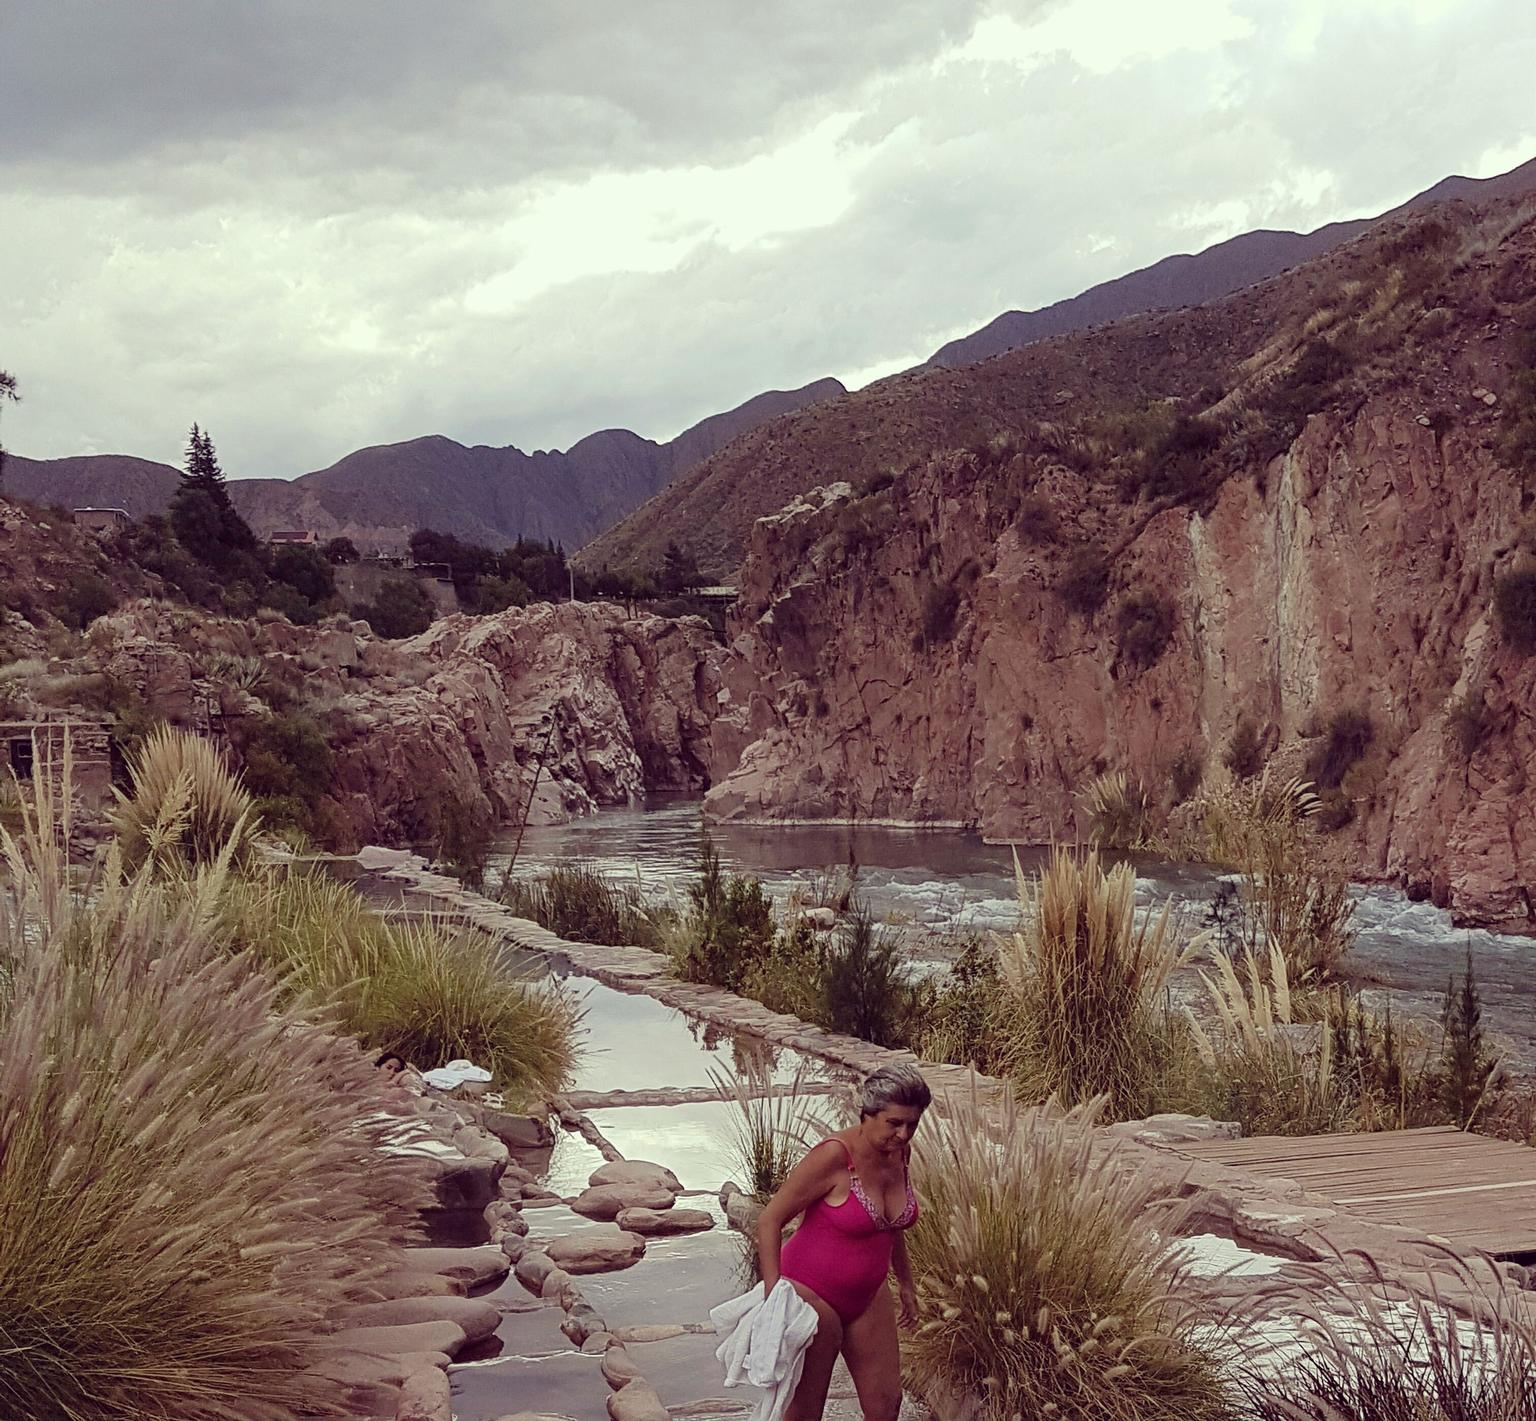 MORE PHOTOS, Spa day in Termas de Cacheuta with transfers from Mendoza